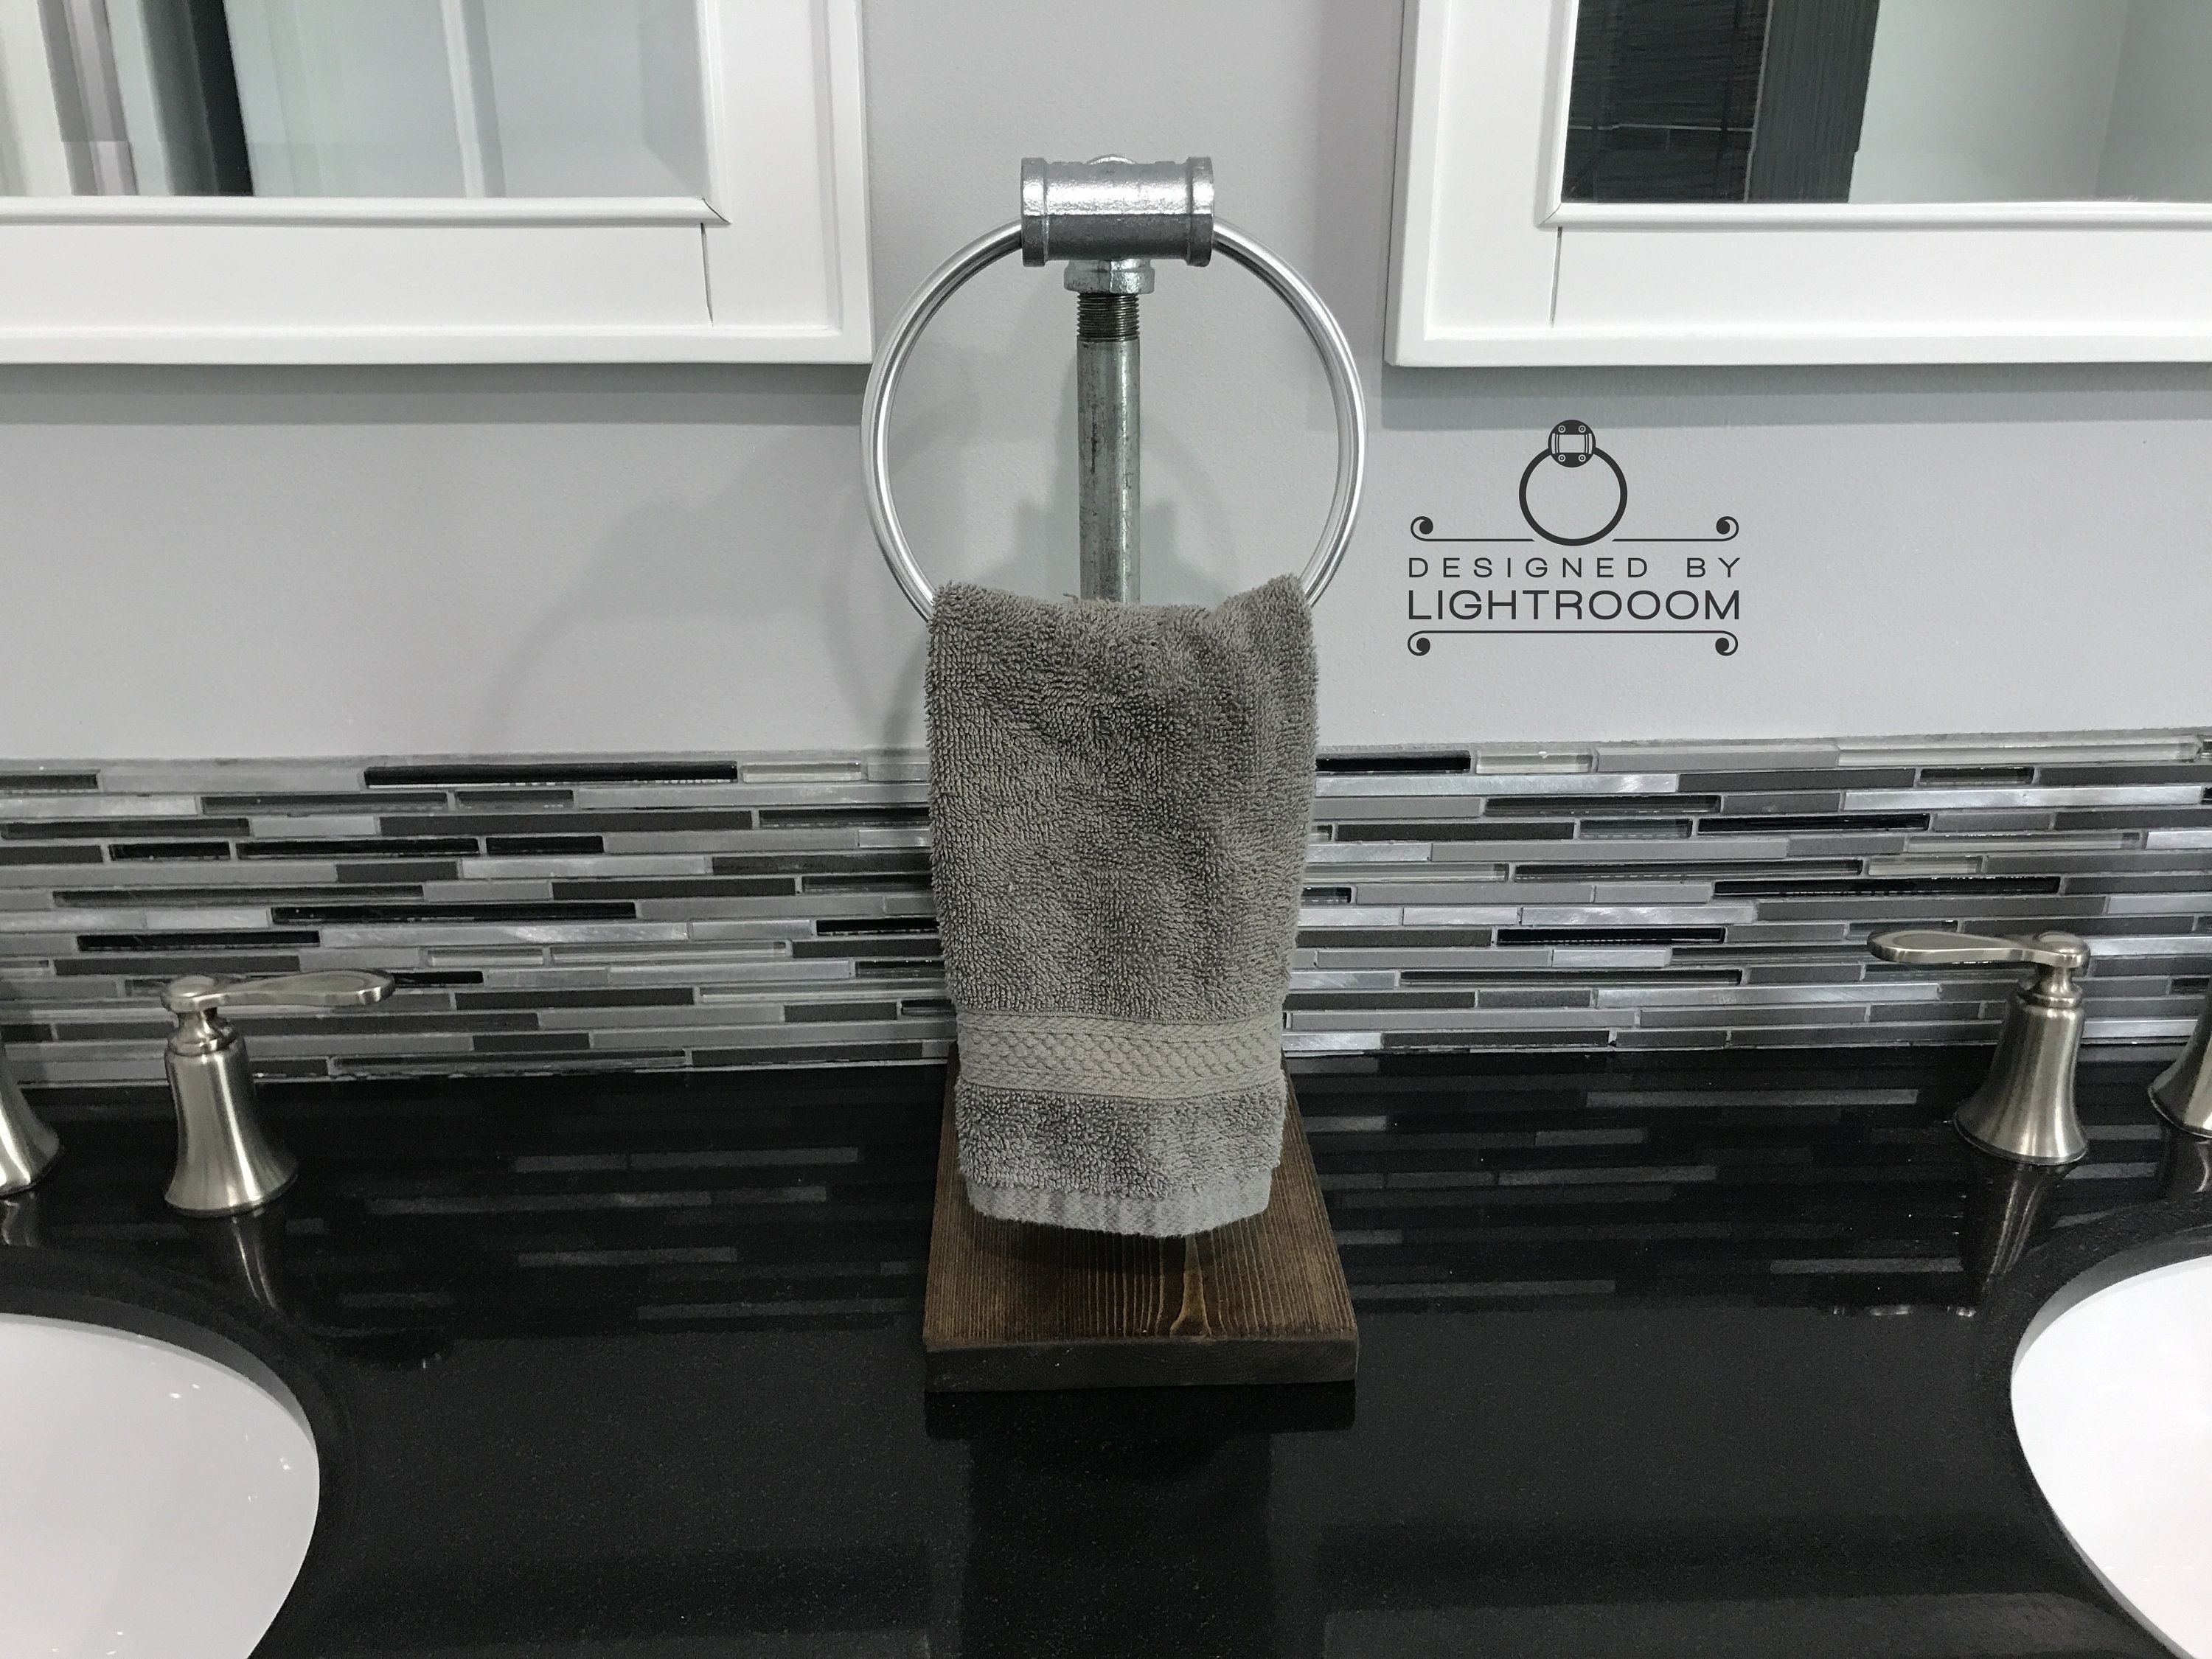 Hand Towel Ring Stand Towel Ring Industrial Rustic Bathroom Decor Guest Bathroom Towel Holde With Images Bathroom Hand Towel Holder Hand Towels Bathroom Towel Holder